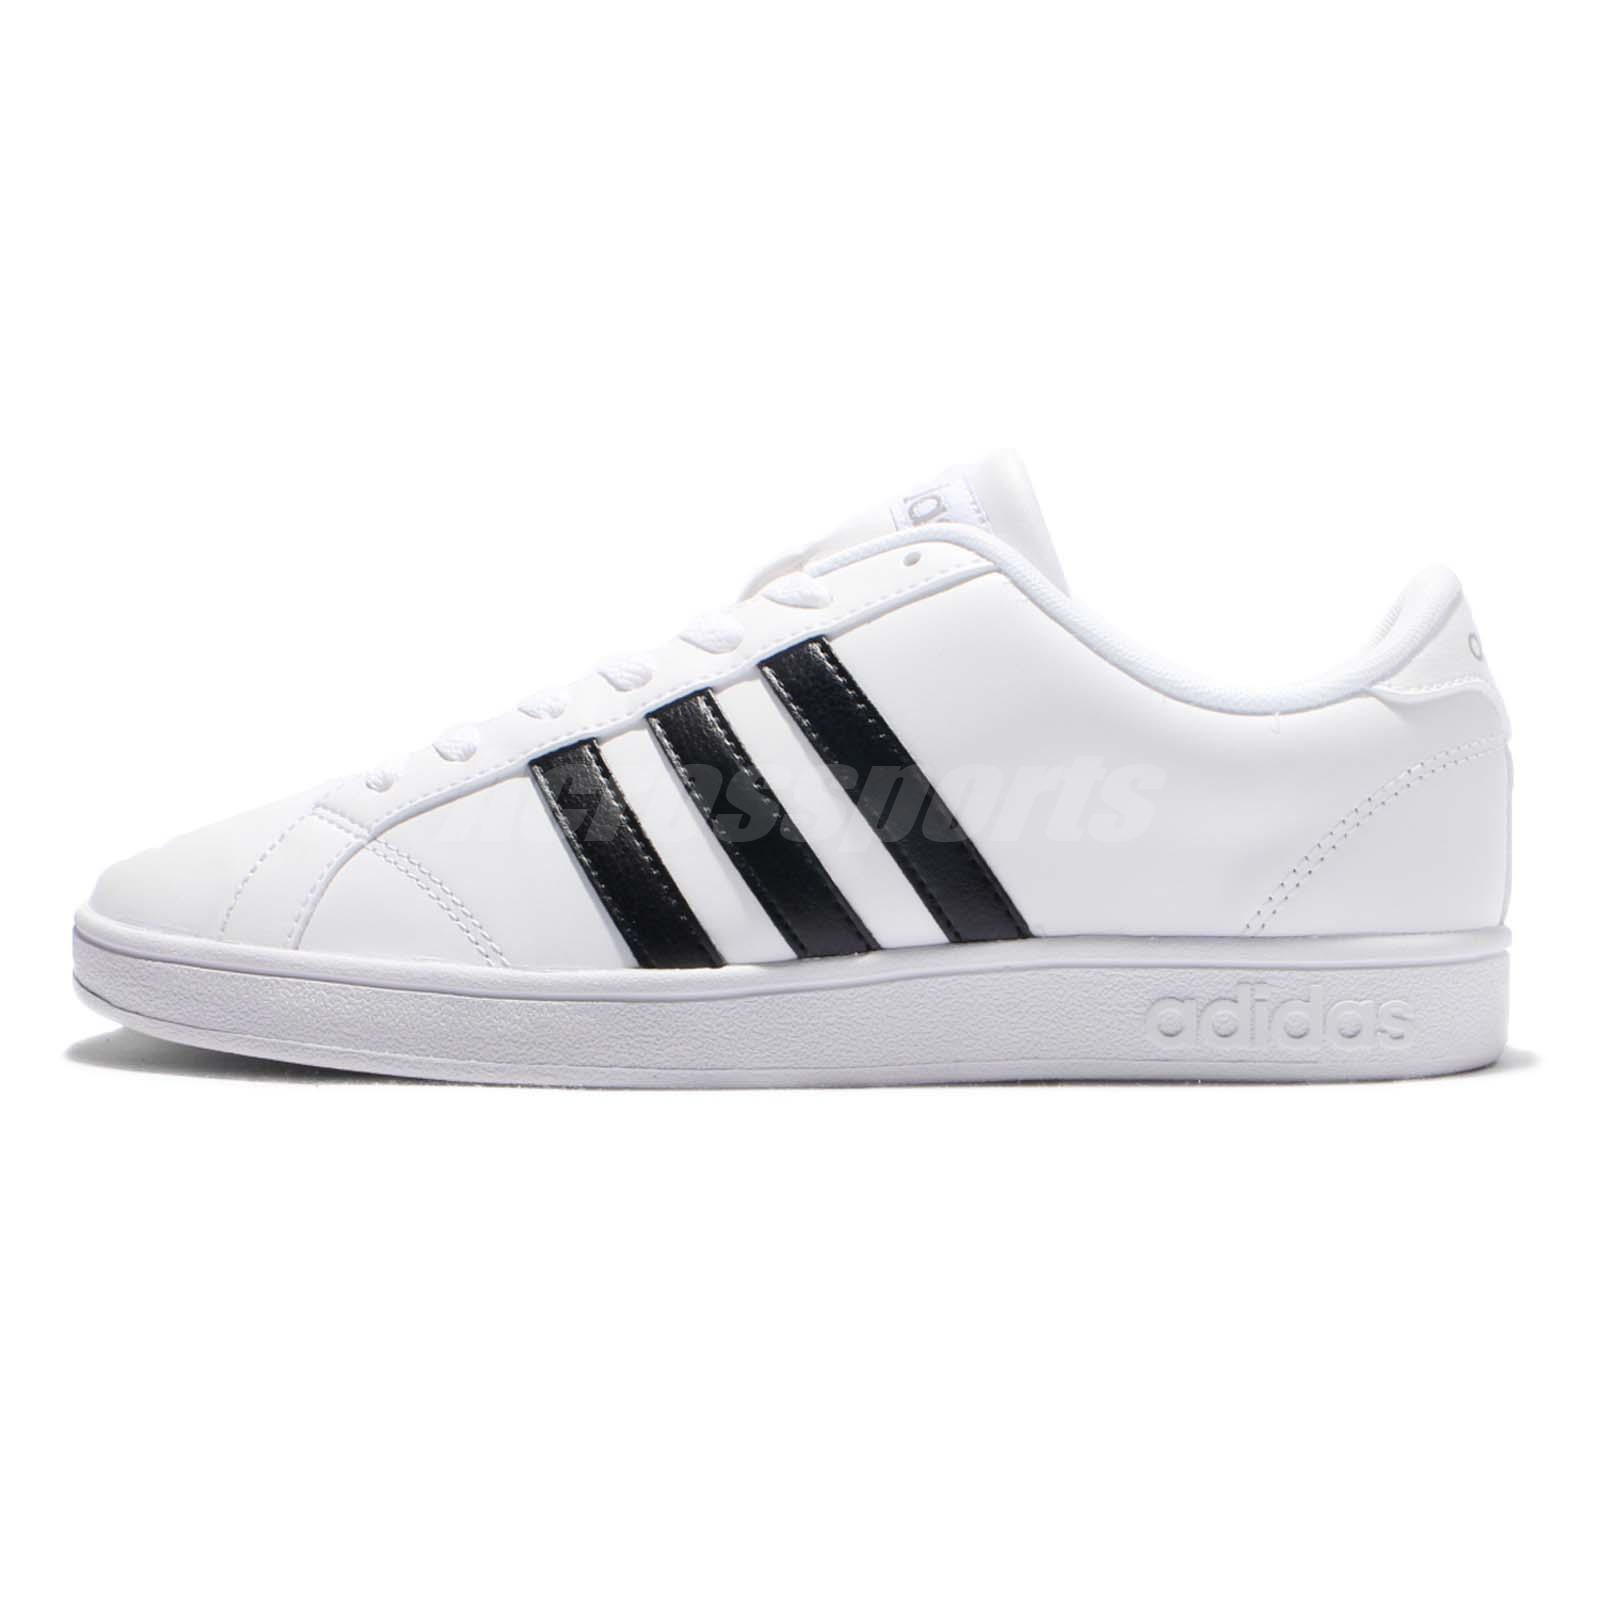 adidas neo label baseline white black mens casual shoes. Black Bedroom Furniture Sets. Home Design Ideas